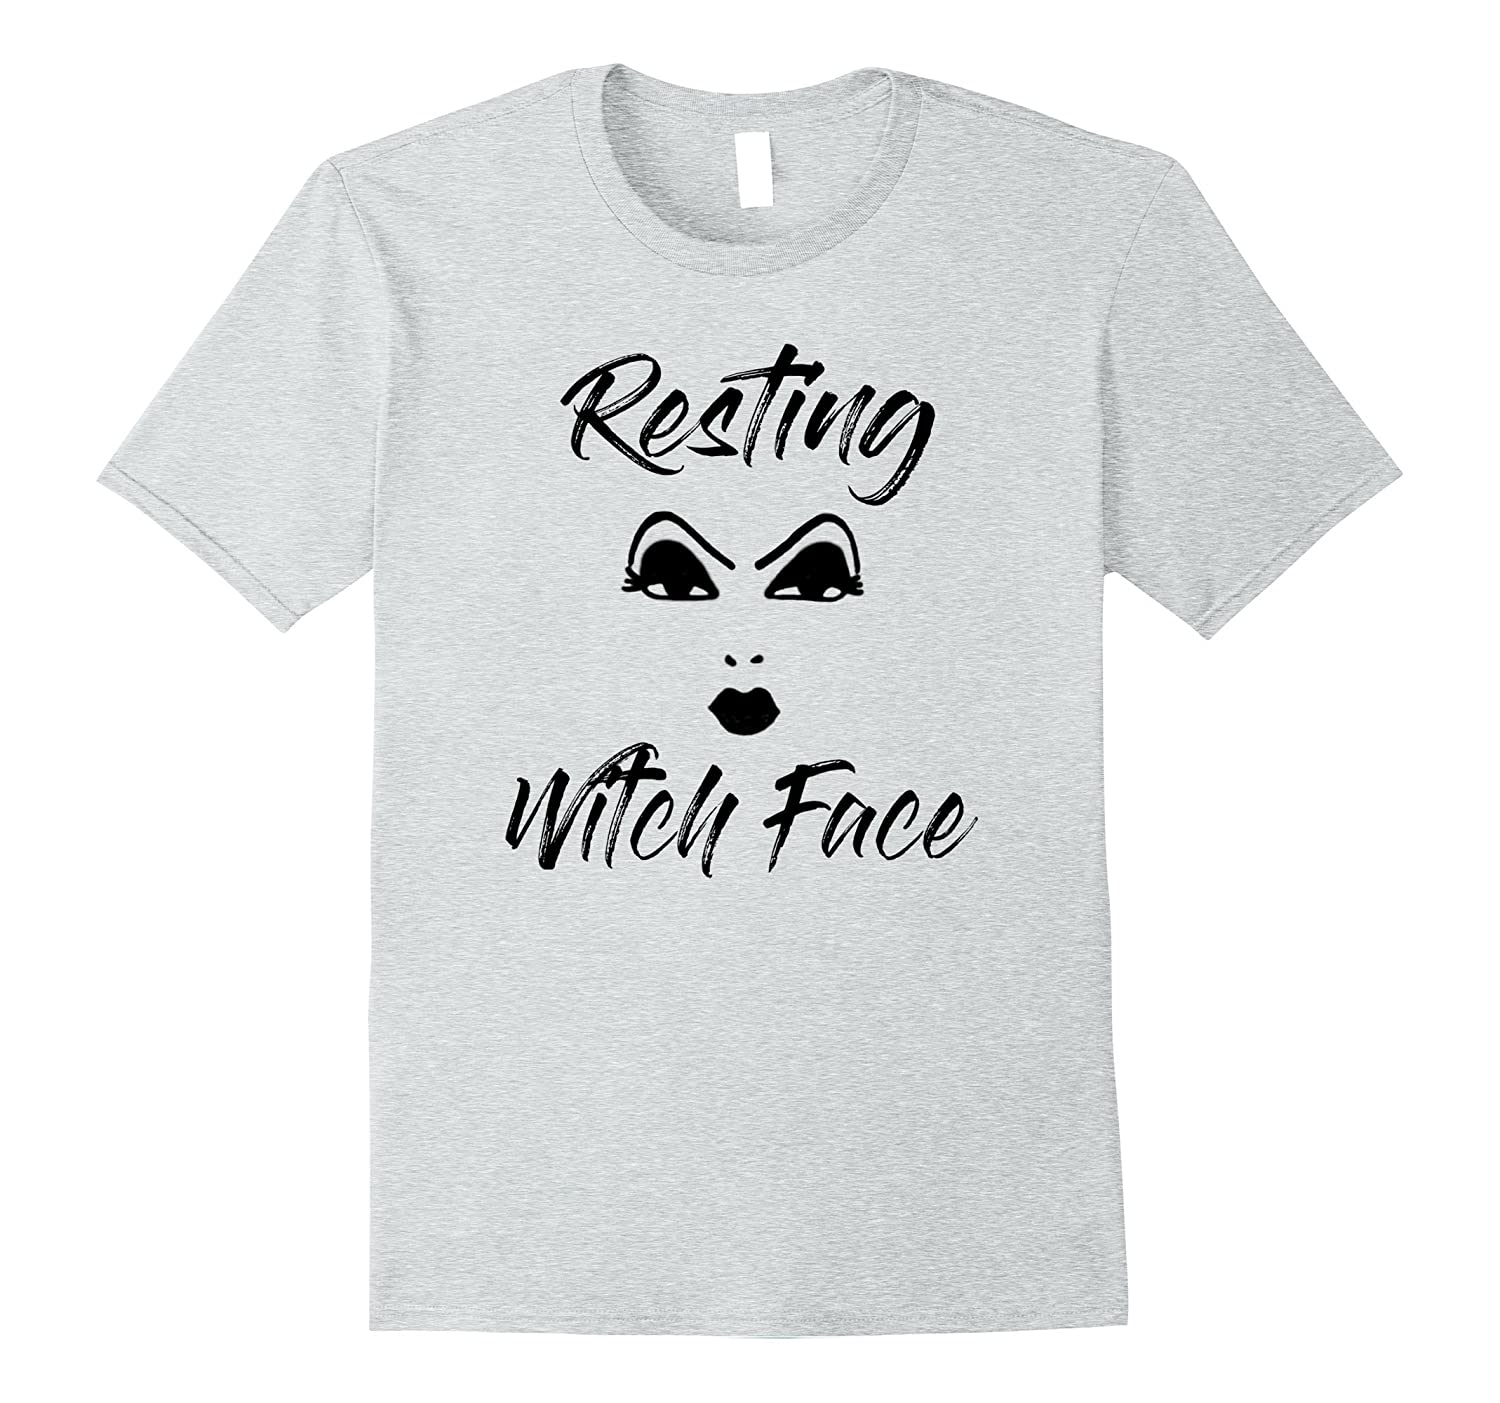 2e71c90f86b Resting Witch Face Funny Halloween T-Shirt-BN – Banazatee